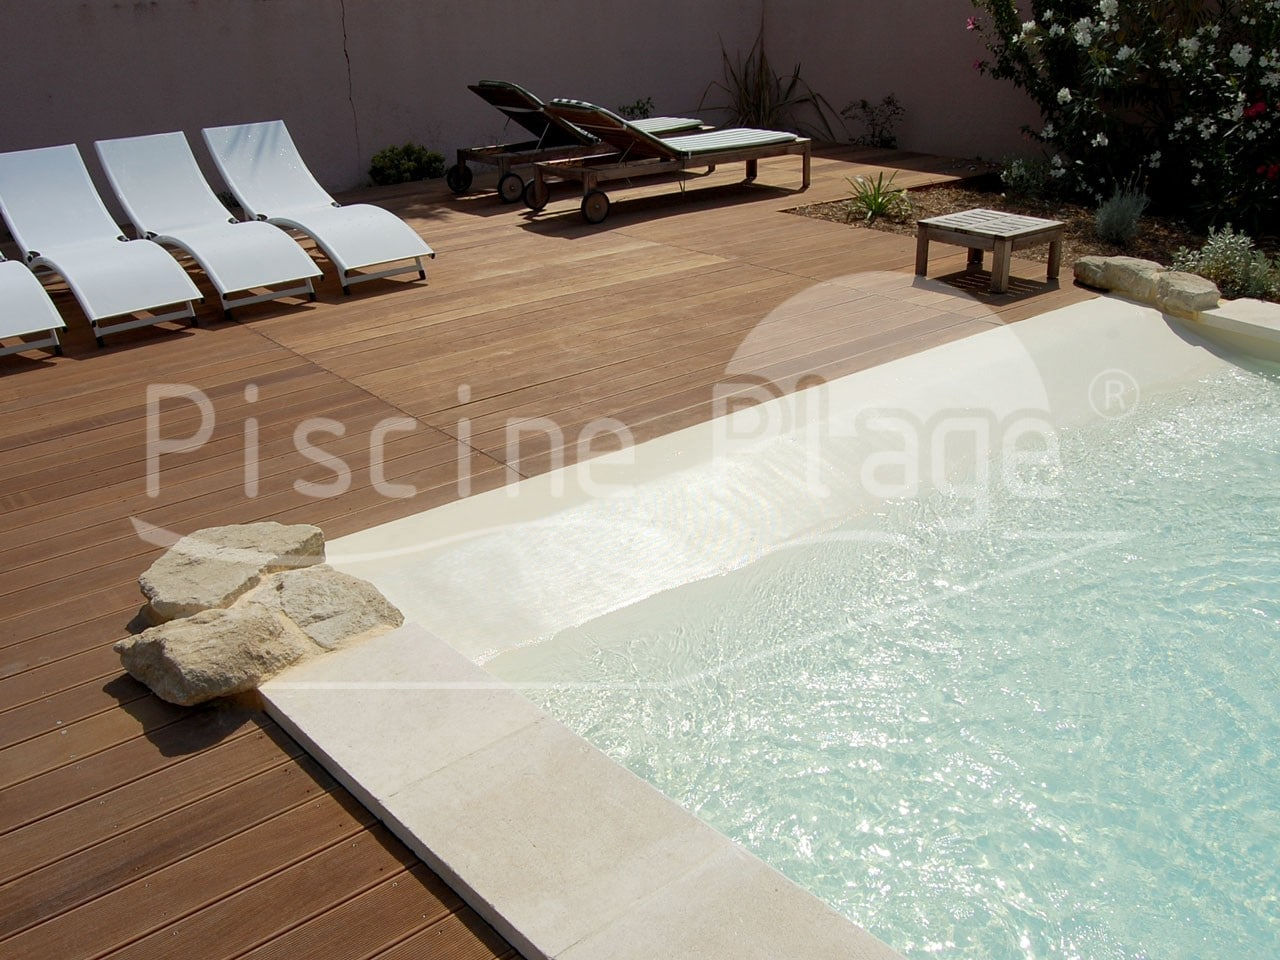 votre propre piscine avec plage priv e cavaillon. Black Bedroom Furniture Sets. Home Design Ideas